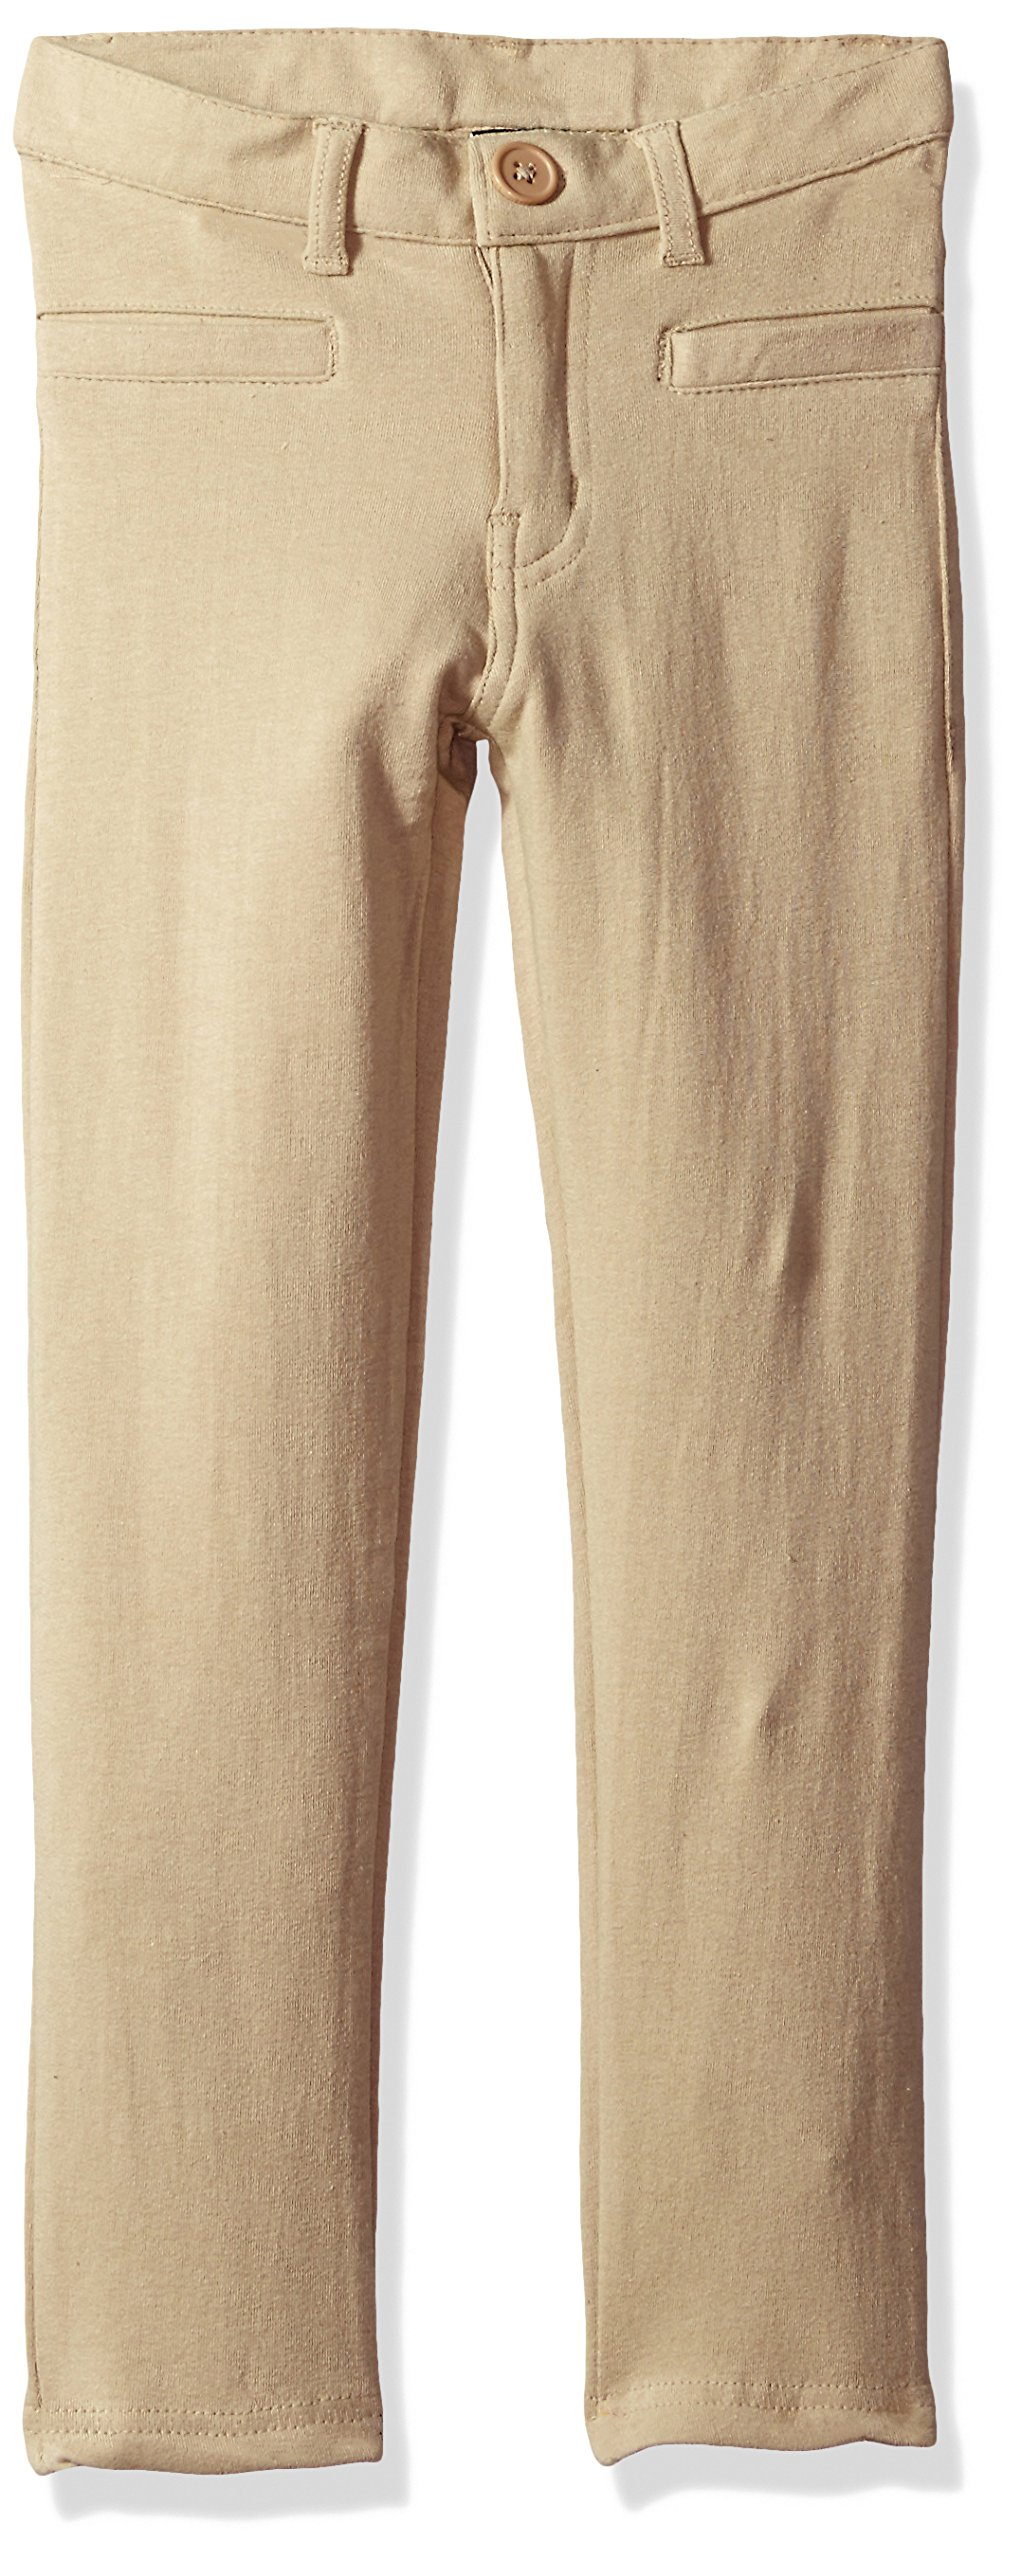 U.S. Polo Assn. Big Girls' Stretch French Terry Moleton Pant (More Styles Available), Khaki-AHEC, 12